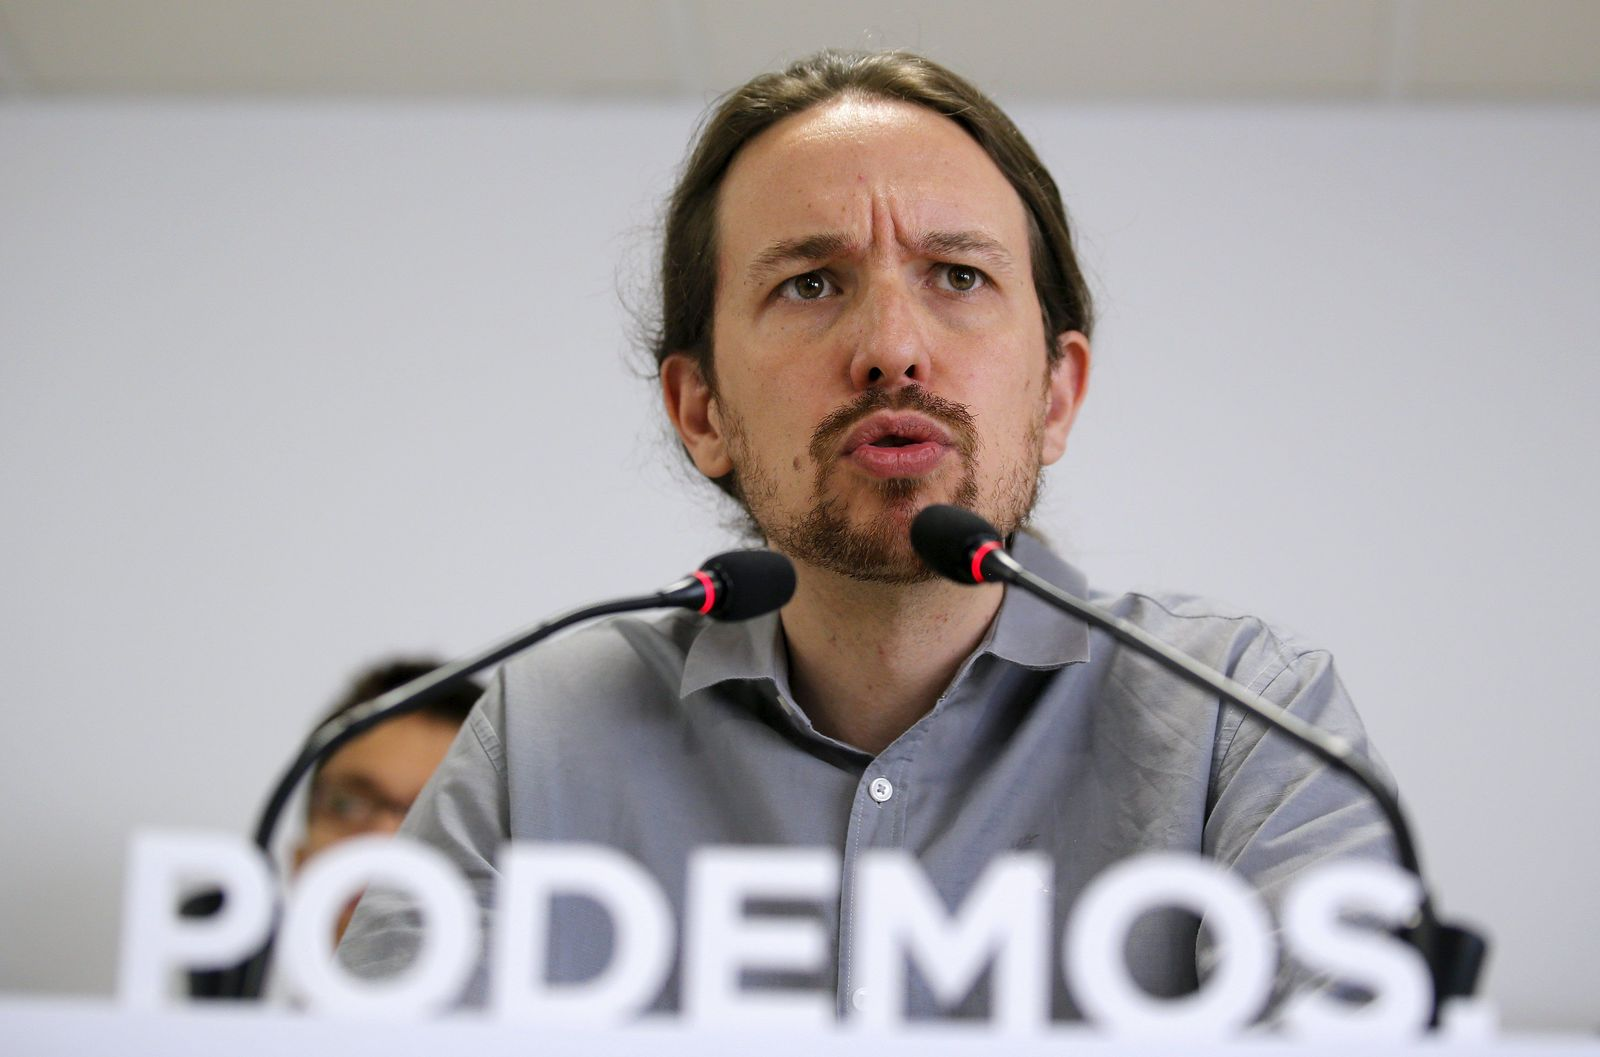 EUROZONE-GREECE/PODEMOS